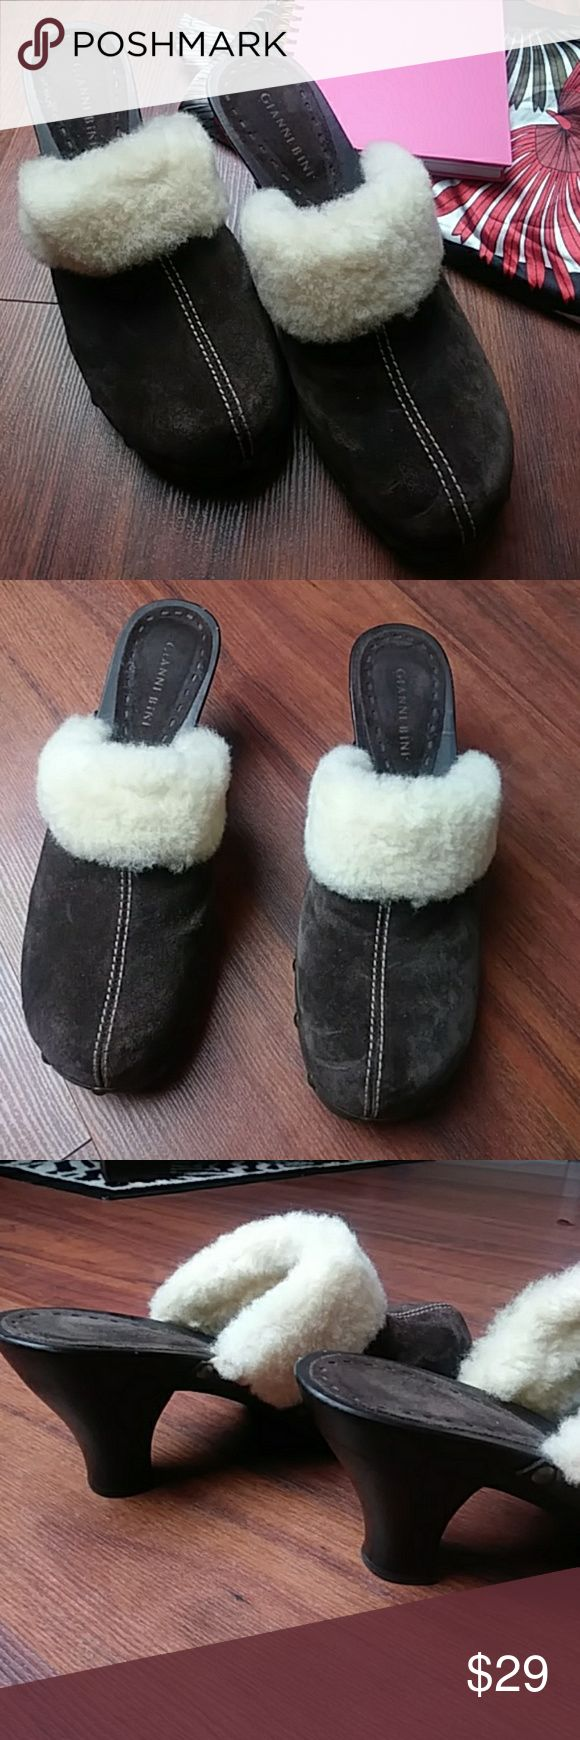 Gianni Bini Mule Fur Lined Clogs Leather Shoe NWOT Gianni Bini Mule Fur Lined Clogs  Size 10 Leather Shoe New with out tag Excellent condition Gianni Bini Shoes Mules & Clogs